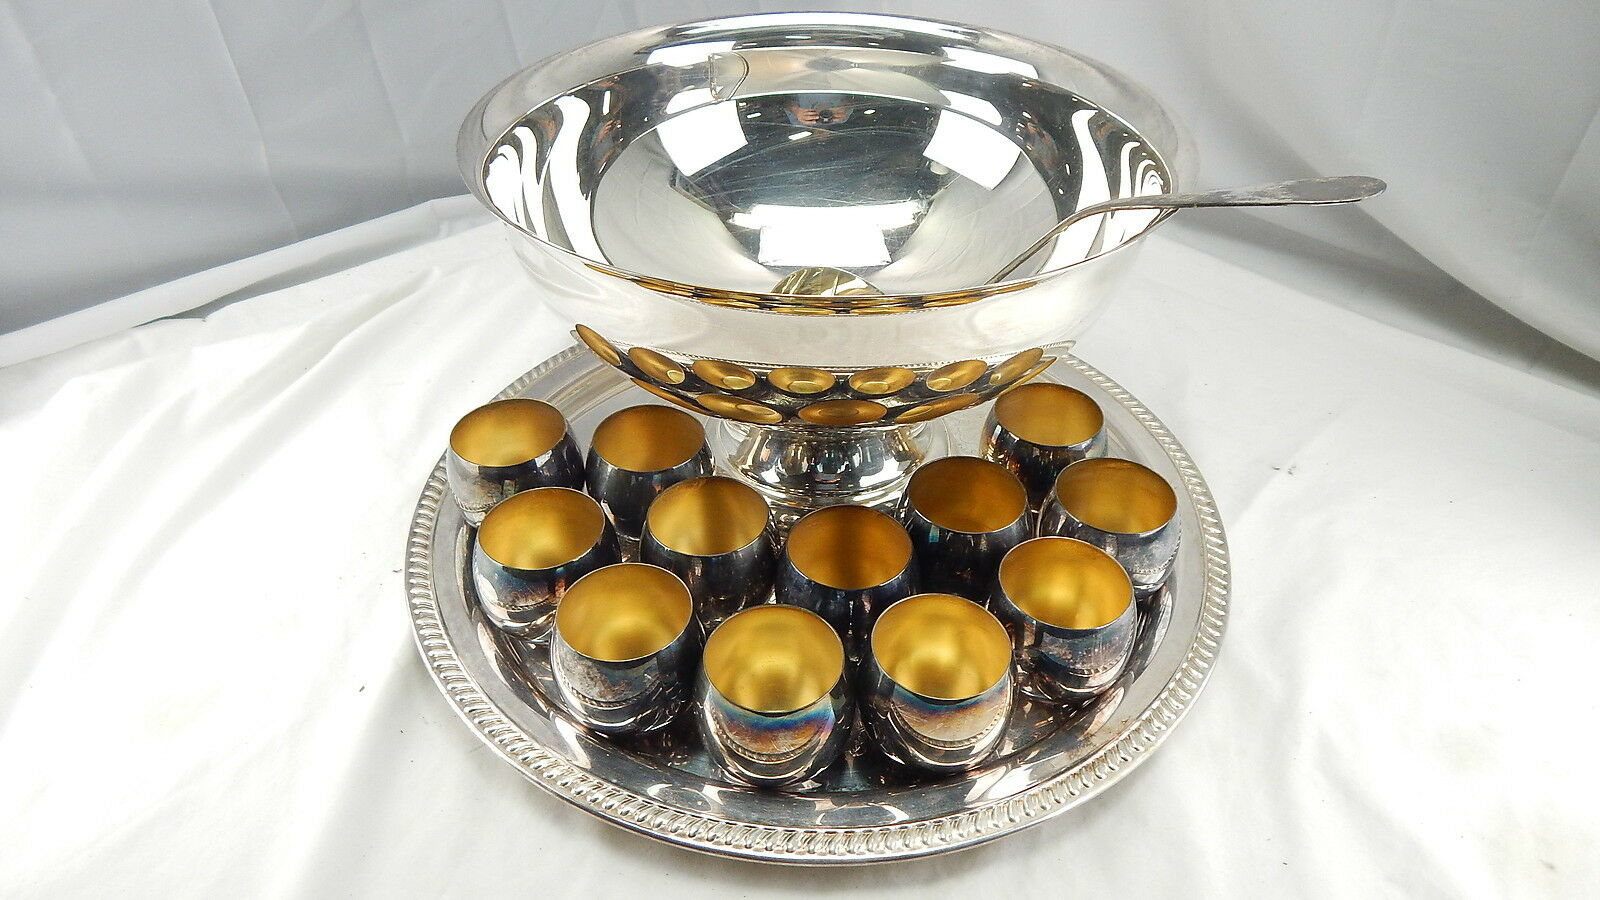 vintage sheridan silver plated punch bowl set large tray ladle 12 cups in box picclick. Black Bedroom Furniture Sets. Home Design Ideas